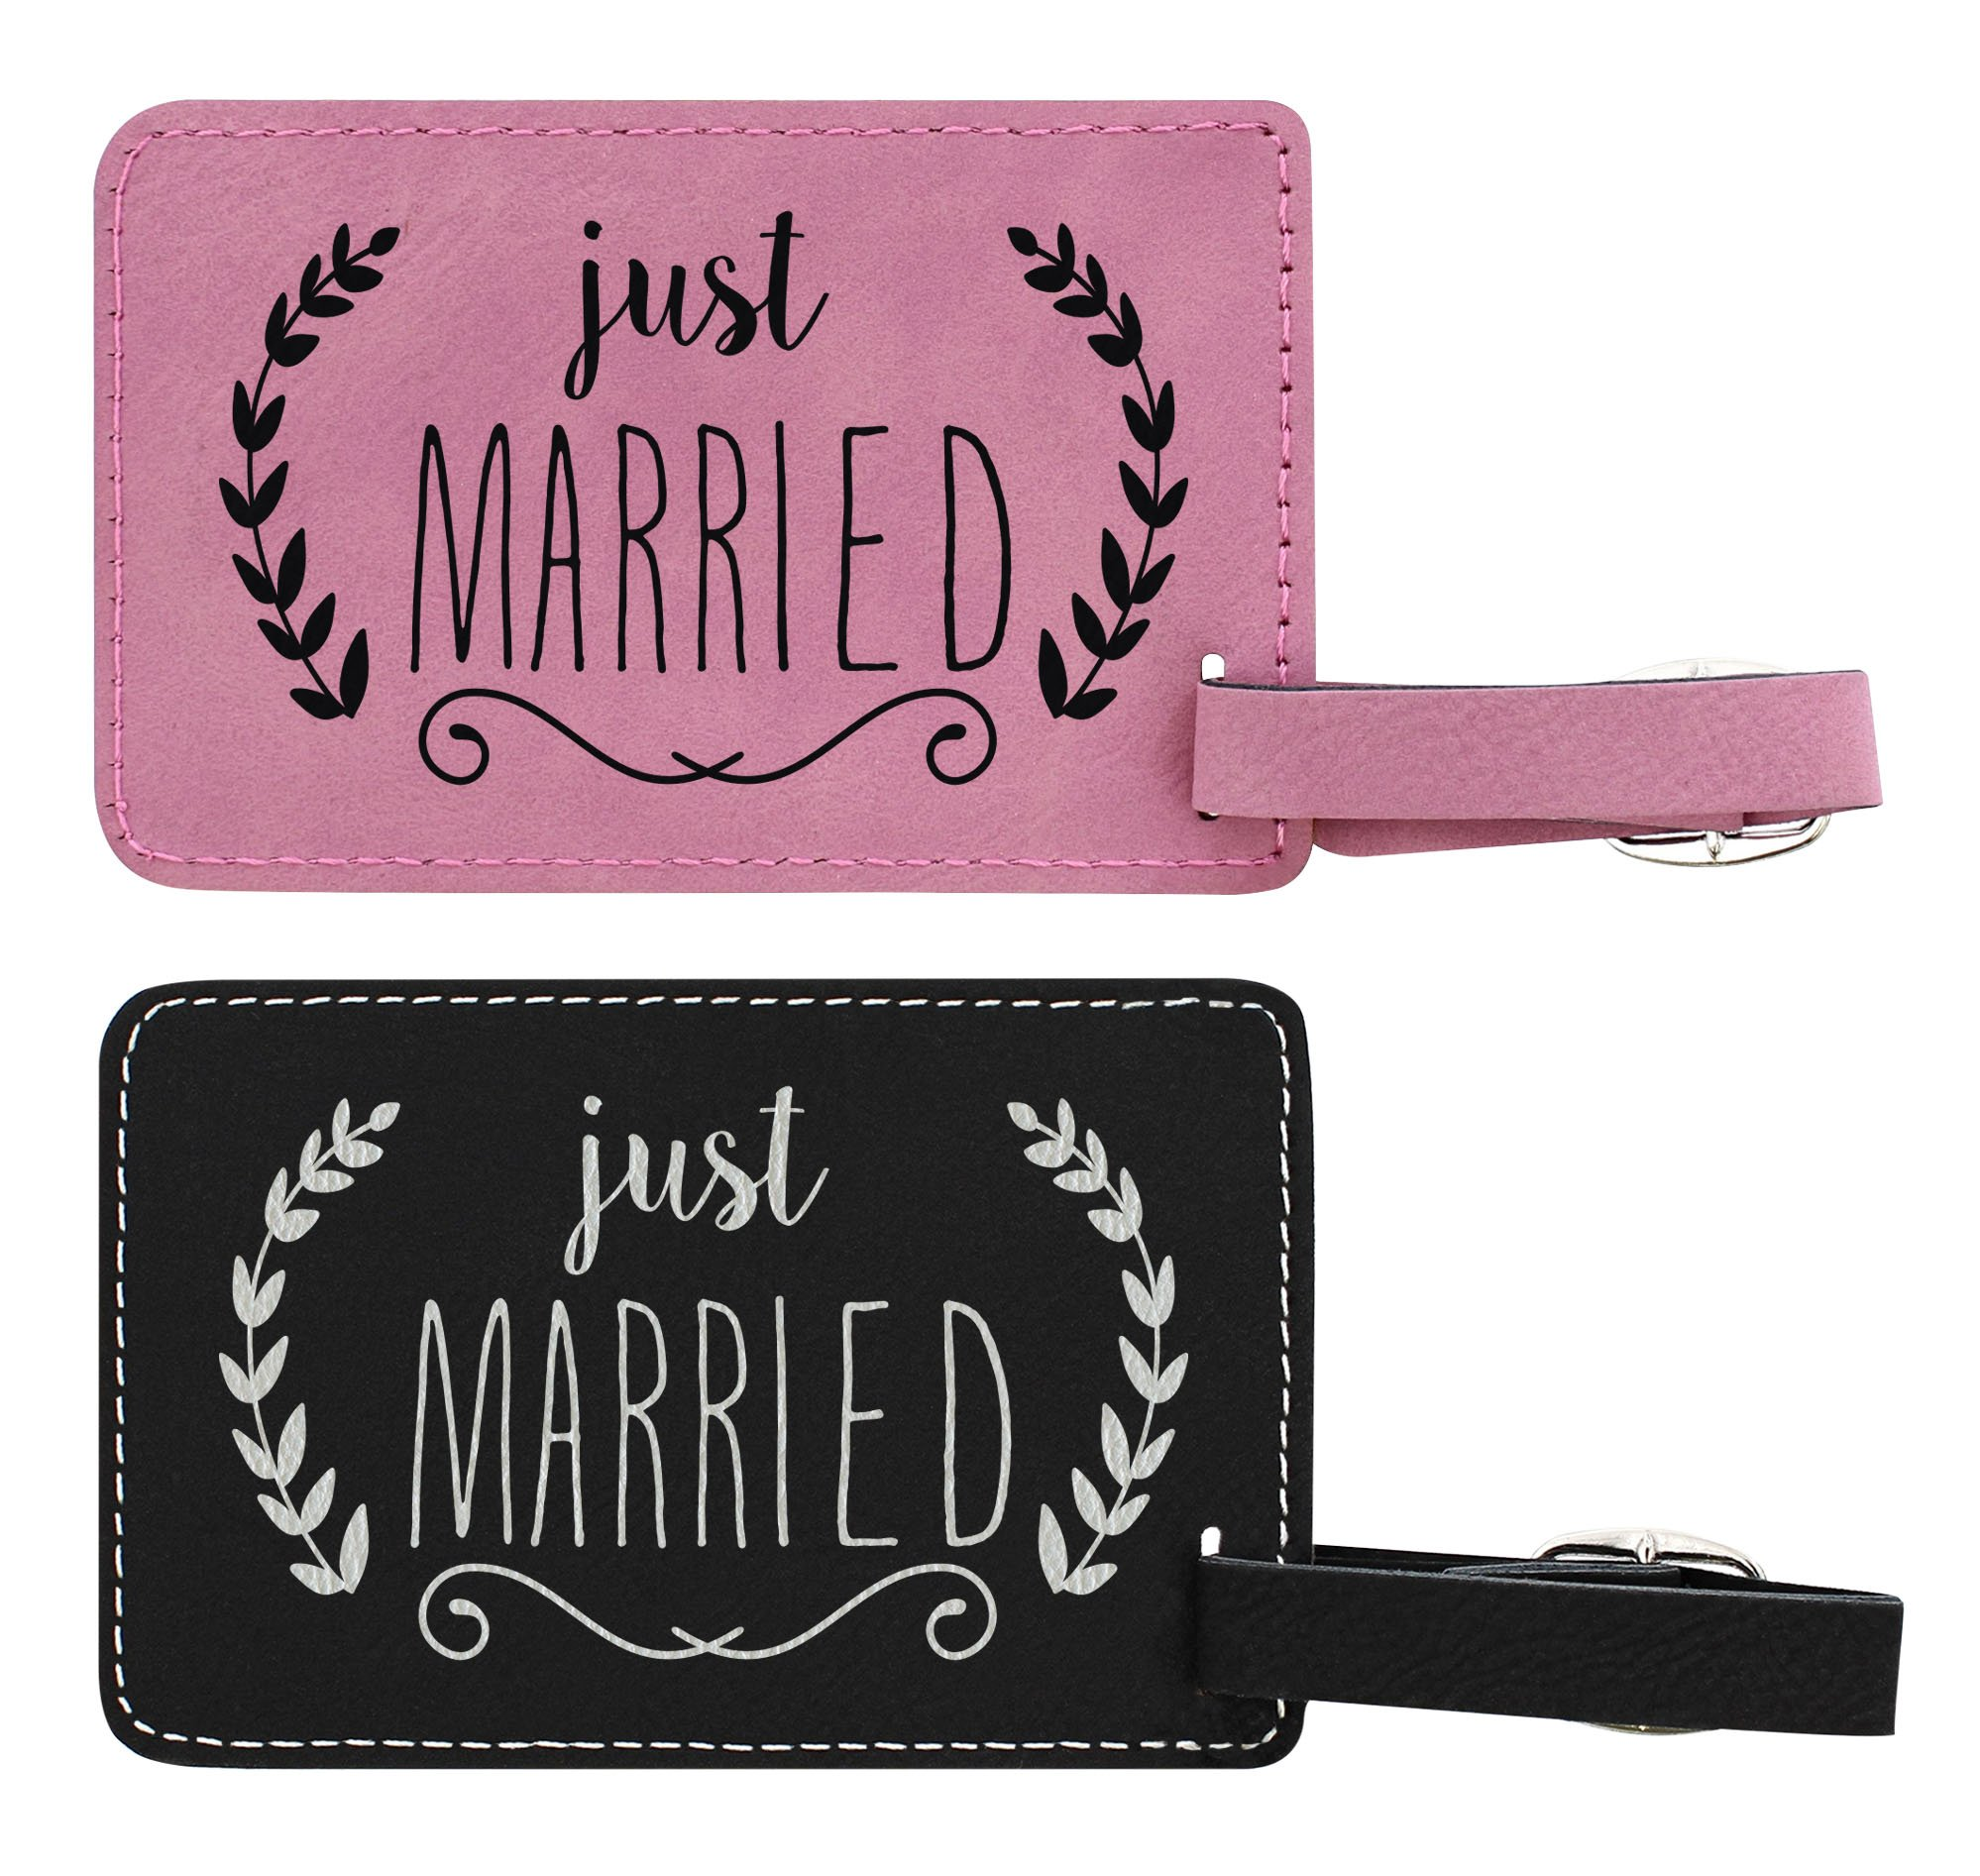 Honeymoon Gifts Just Married Tags 2-pack Laser Engraved Leather Customized Luggage Tags Pink & Black by ThisWear